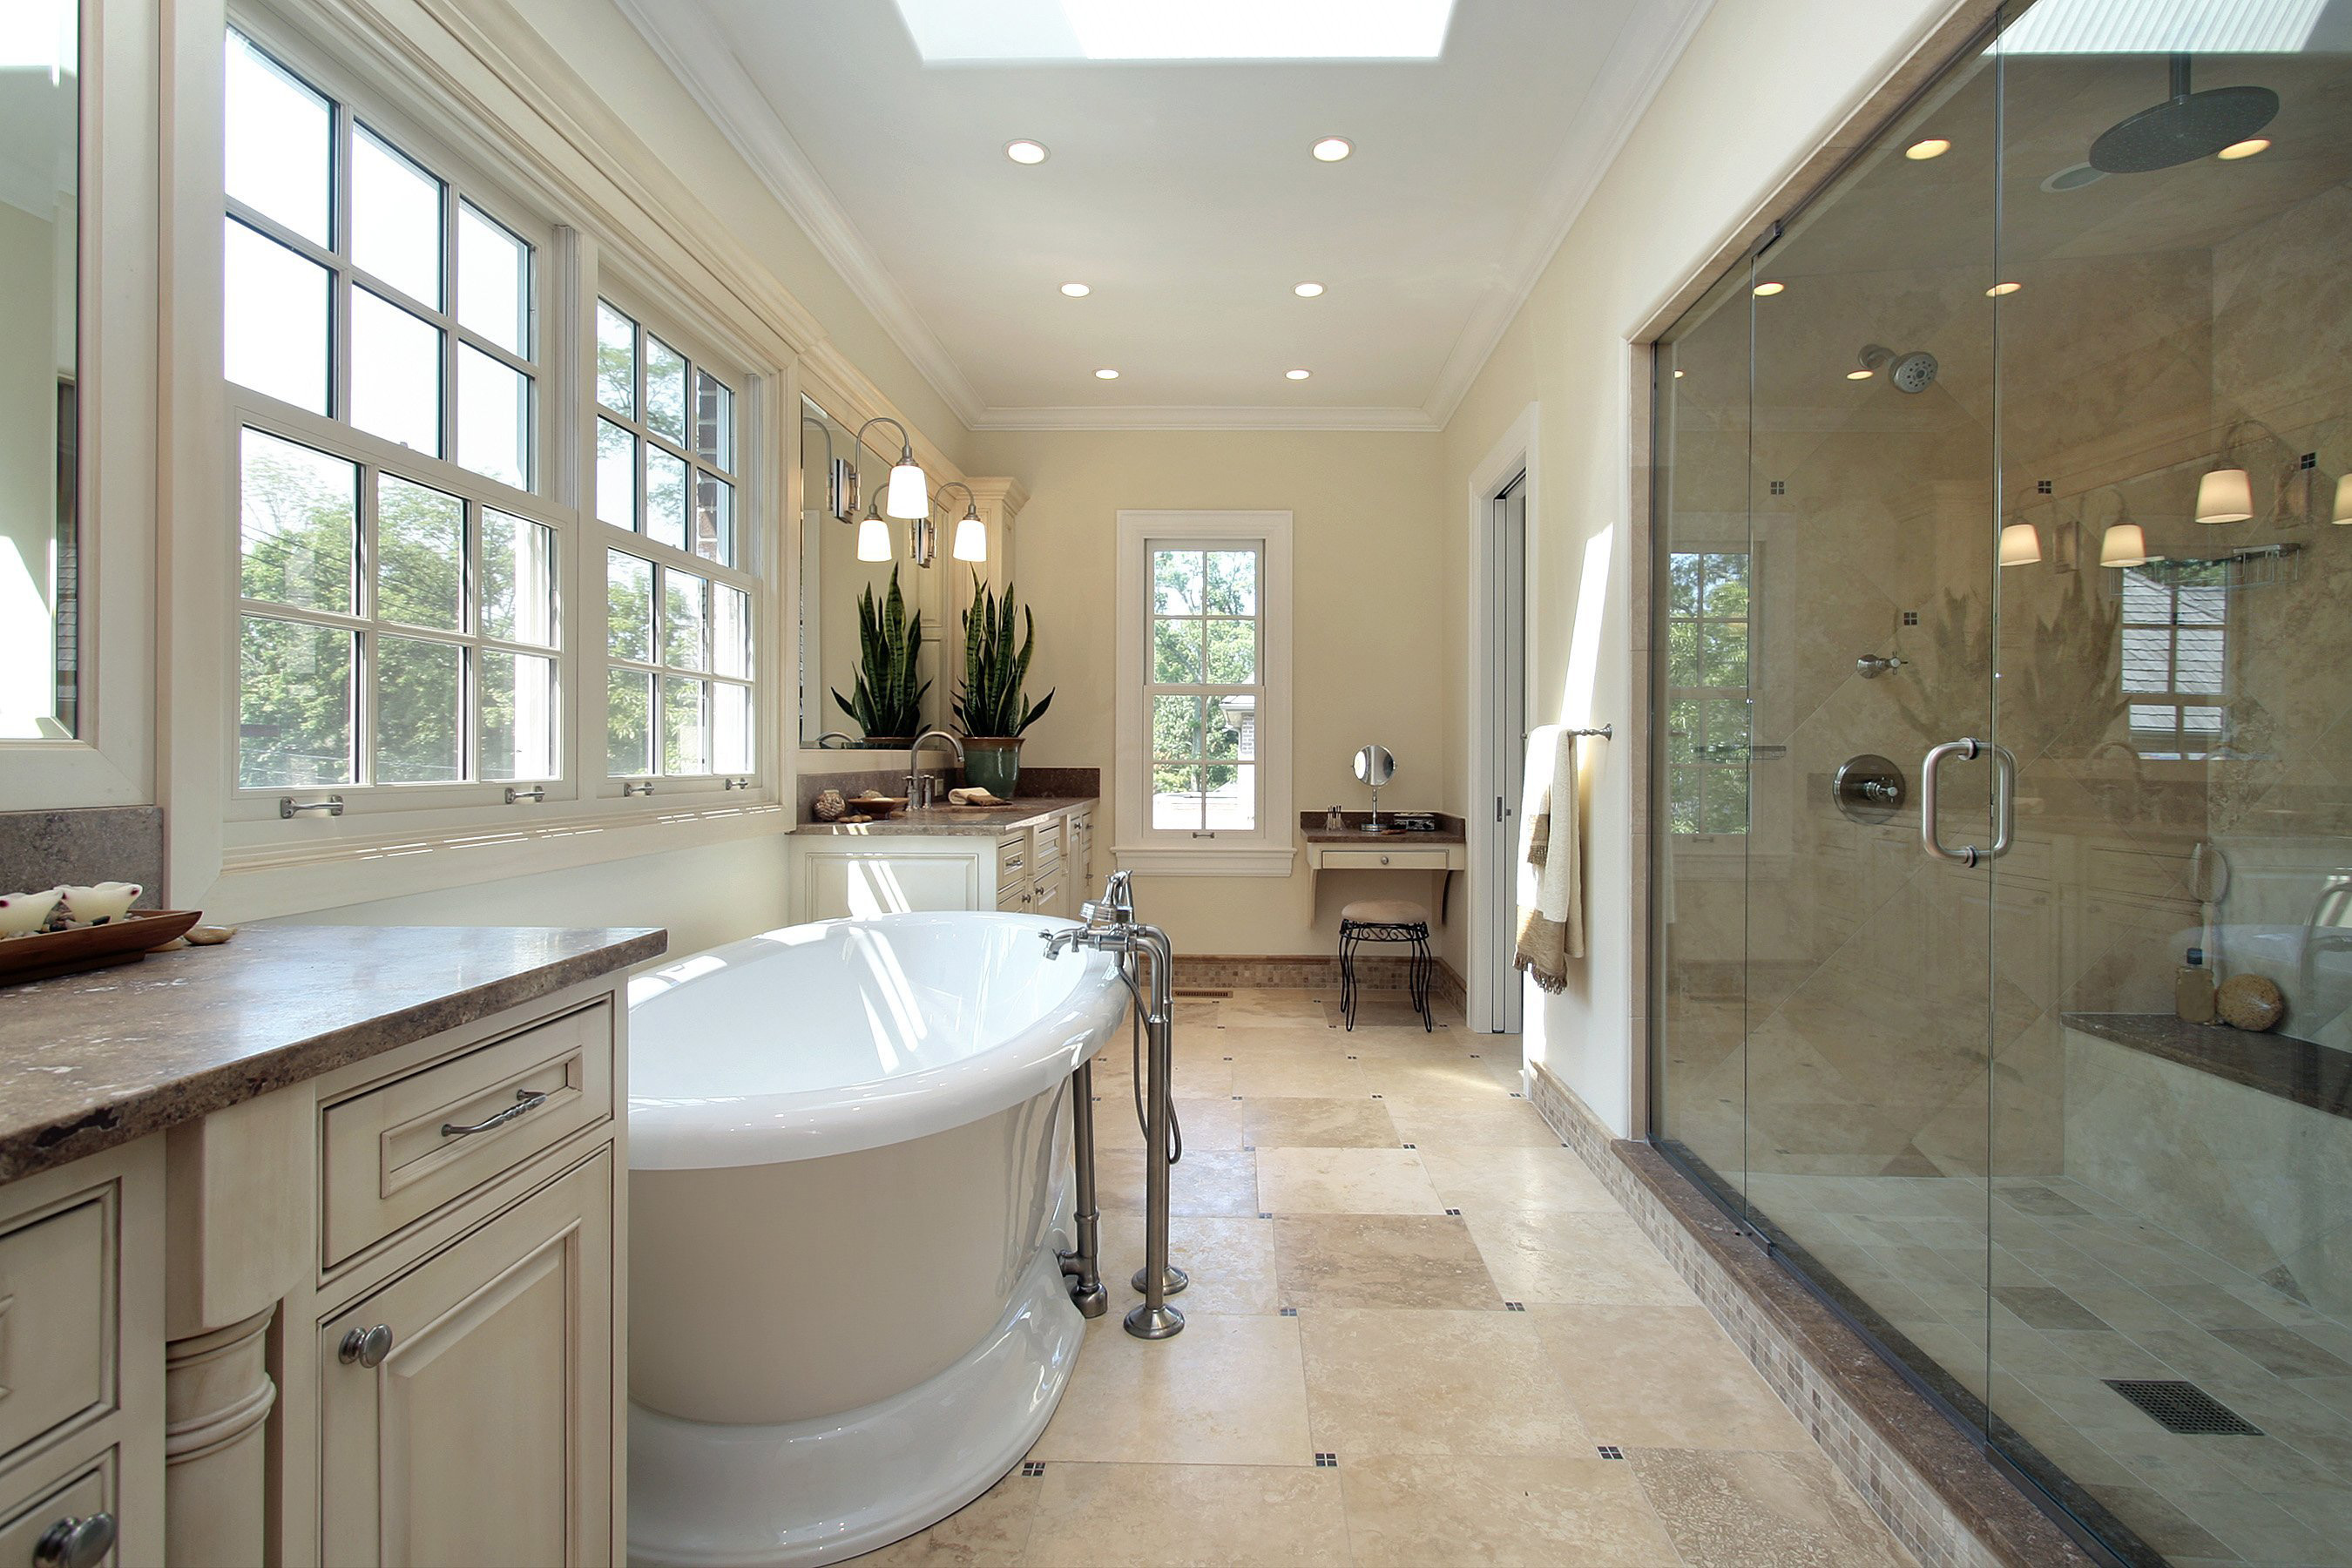 Cost To Remodel Master Bathroom how much does it cost to remodel a bathroom - large and beautiful